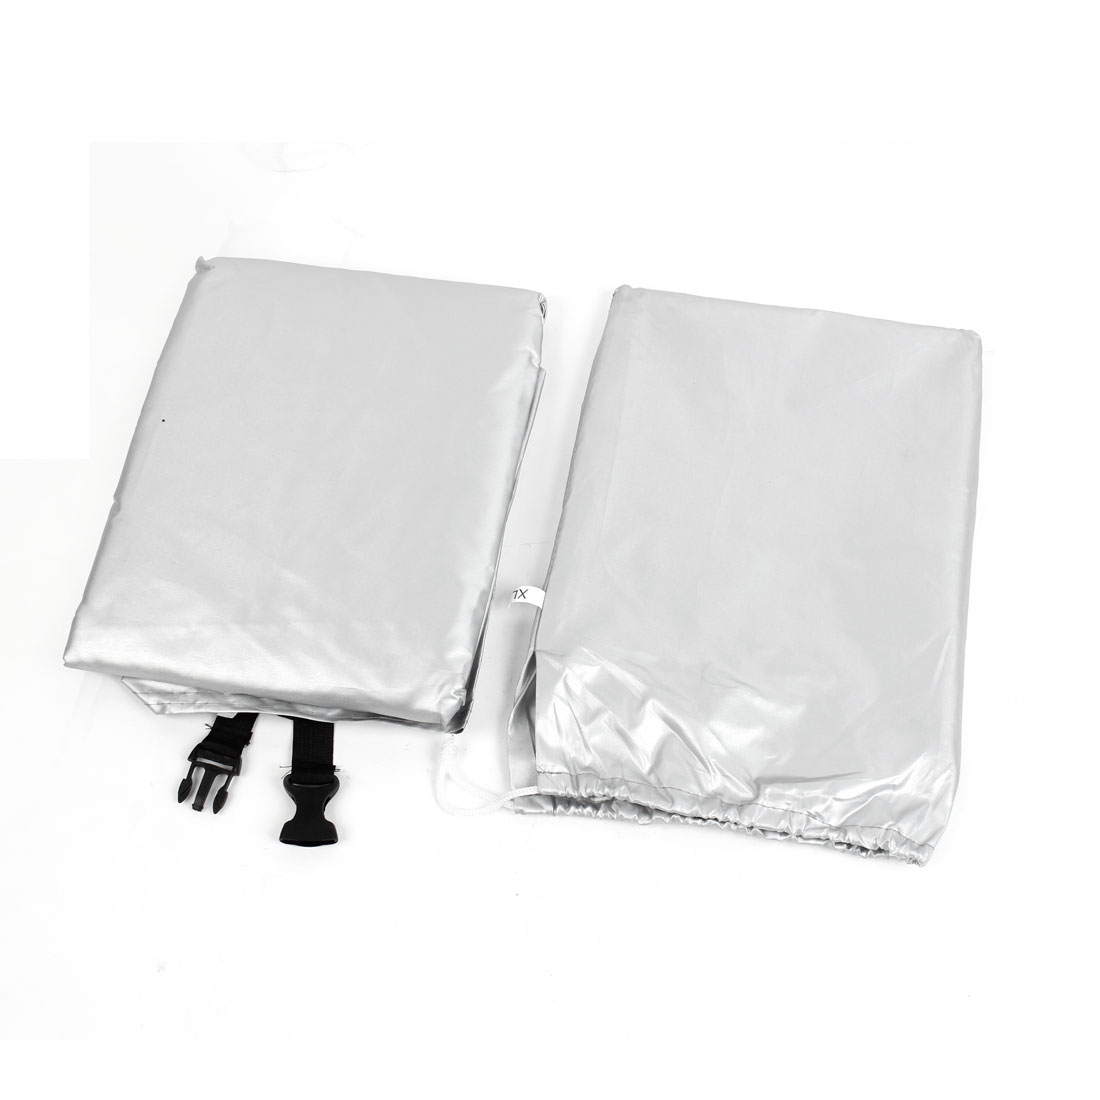 Black Silver Tone 180T Waterproof Dust Resistant Bike Cover 180cm x 60cm x 90cm